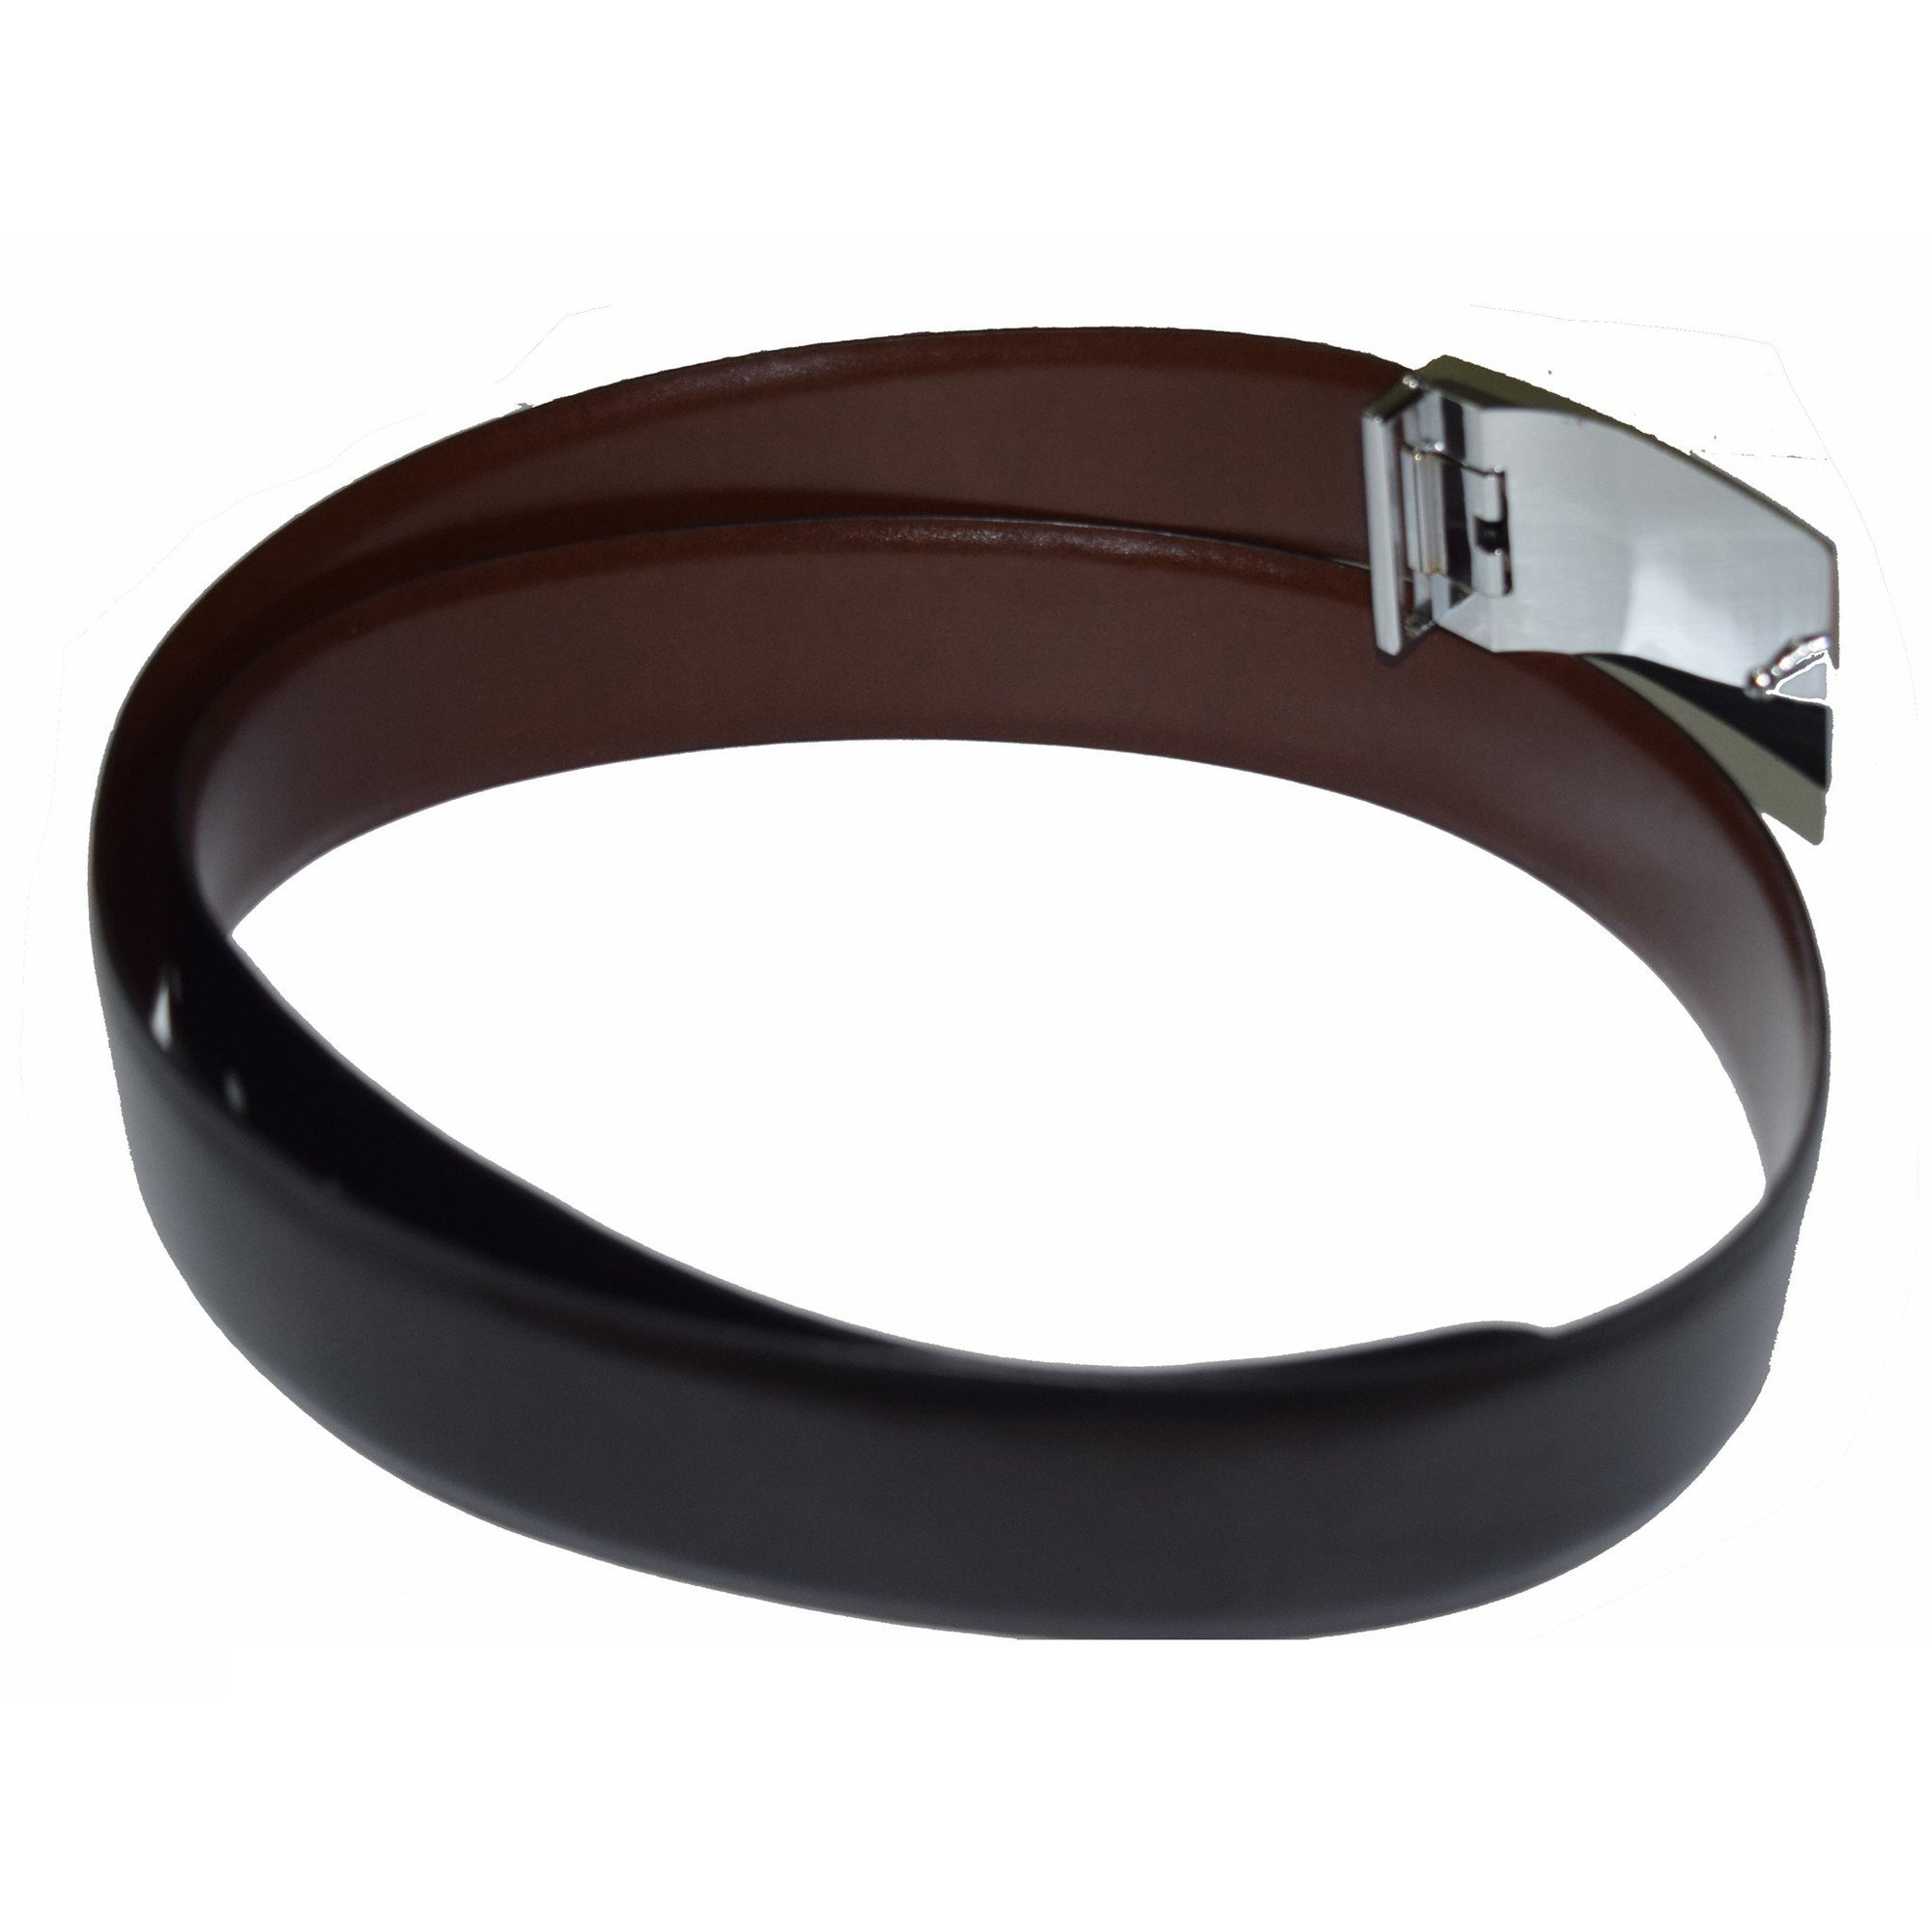 Plate buckle black and brown reversible leather belt - Lusso Leather - 2